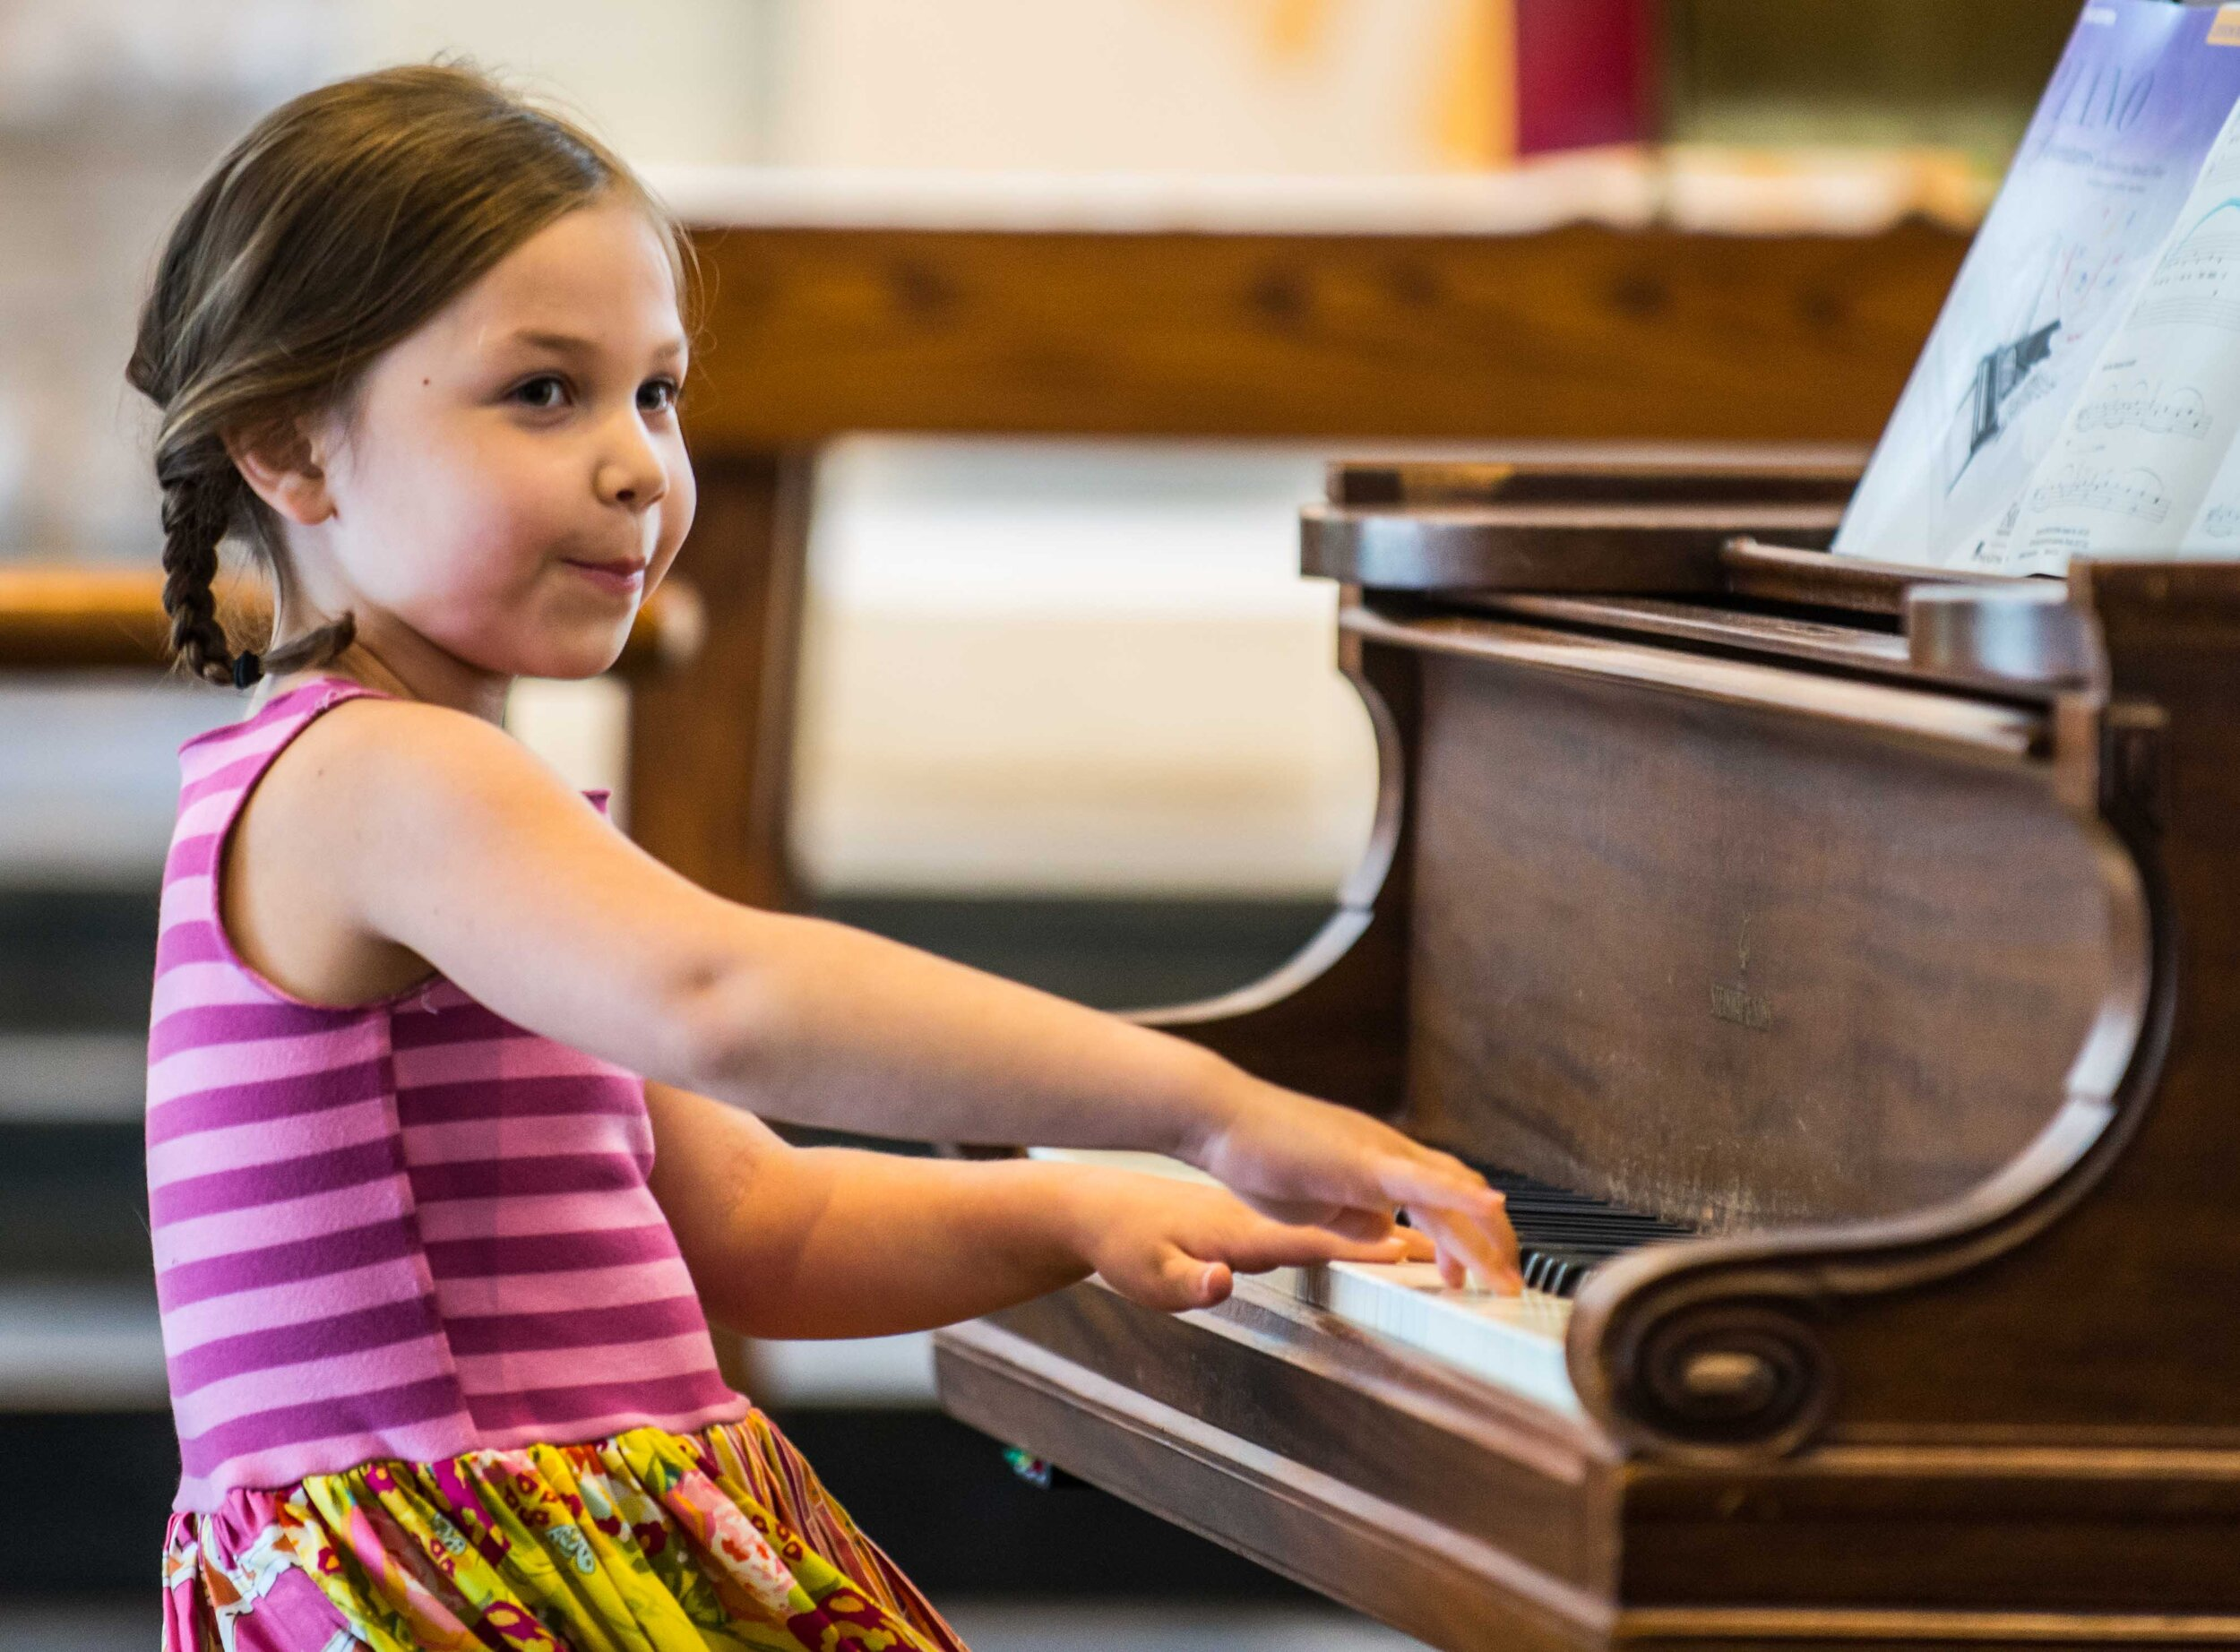 Music Lessons   in Mendota Heights   for beginner, intermediate, and advanced students of all ages   CALL 651-263-9475 TO SCHEDULE YOUR FIRST LESSON   REQUEST INFO